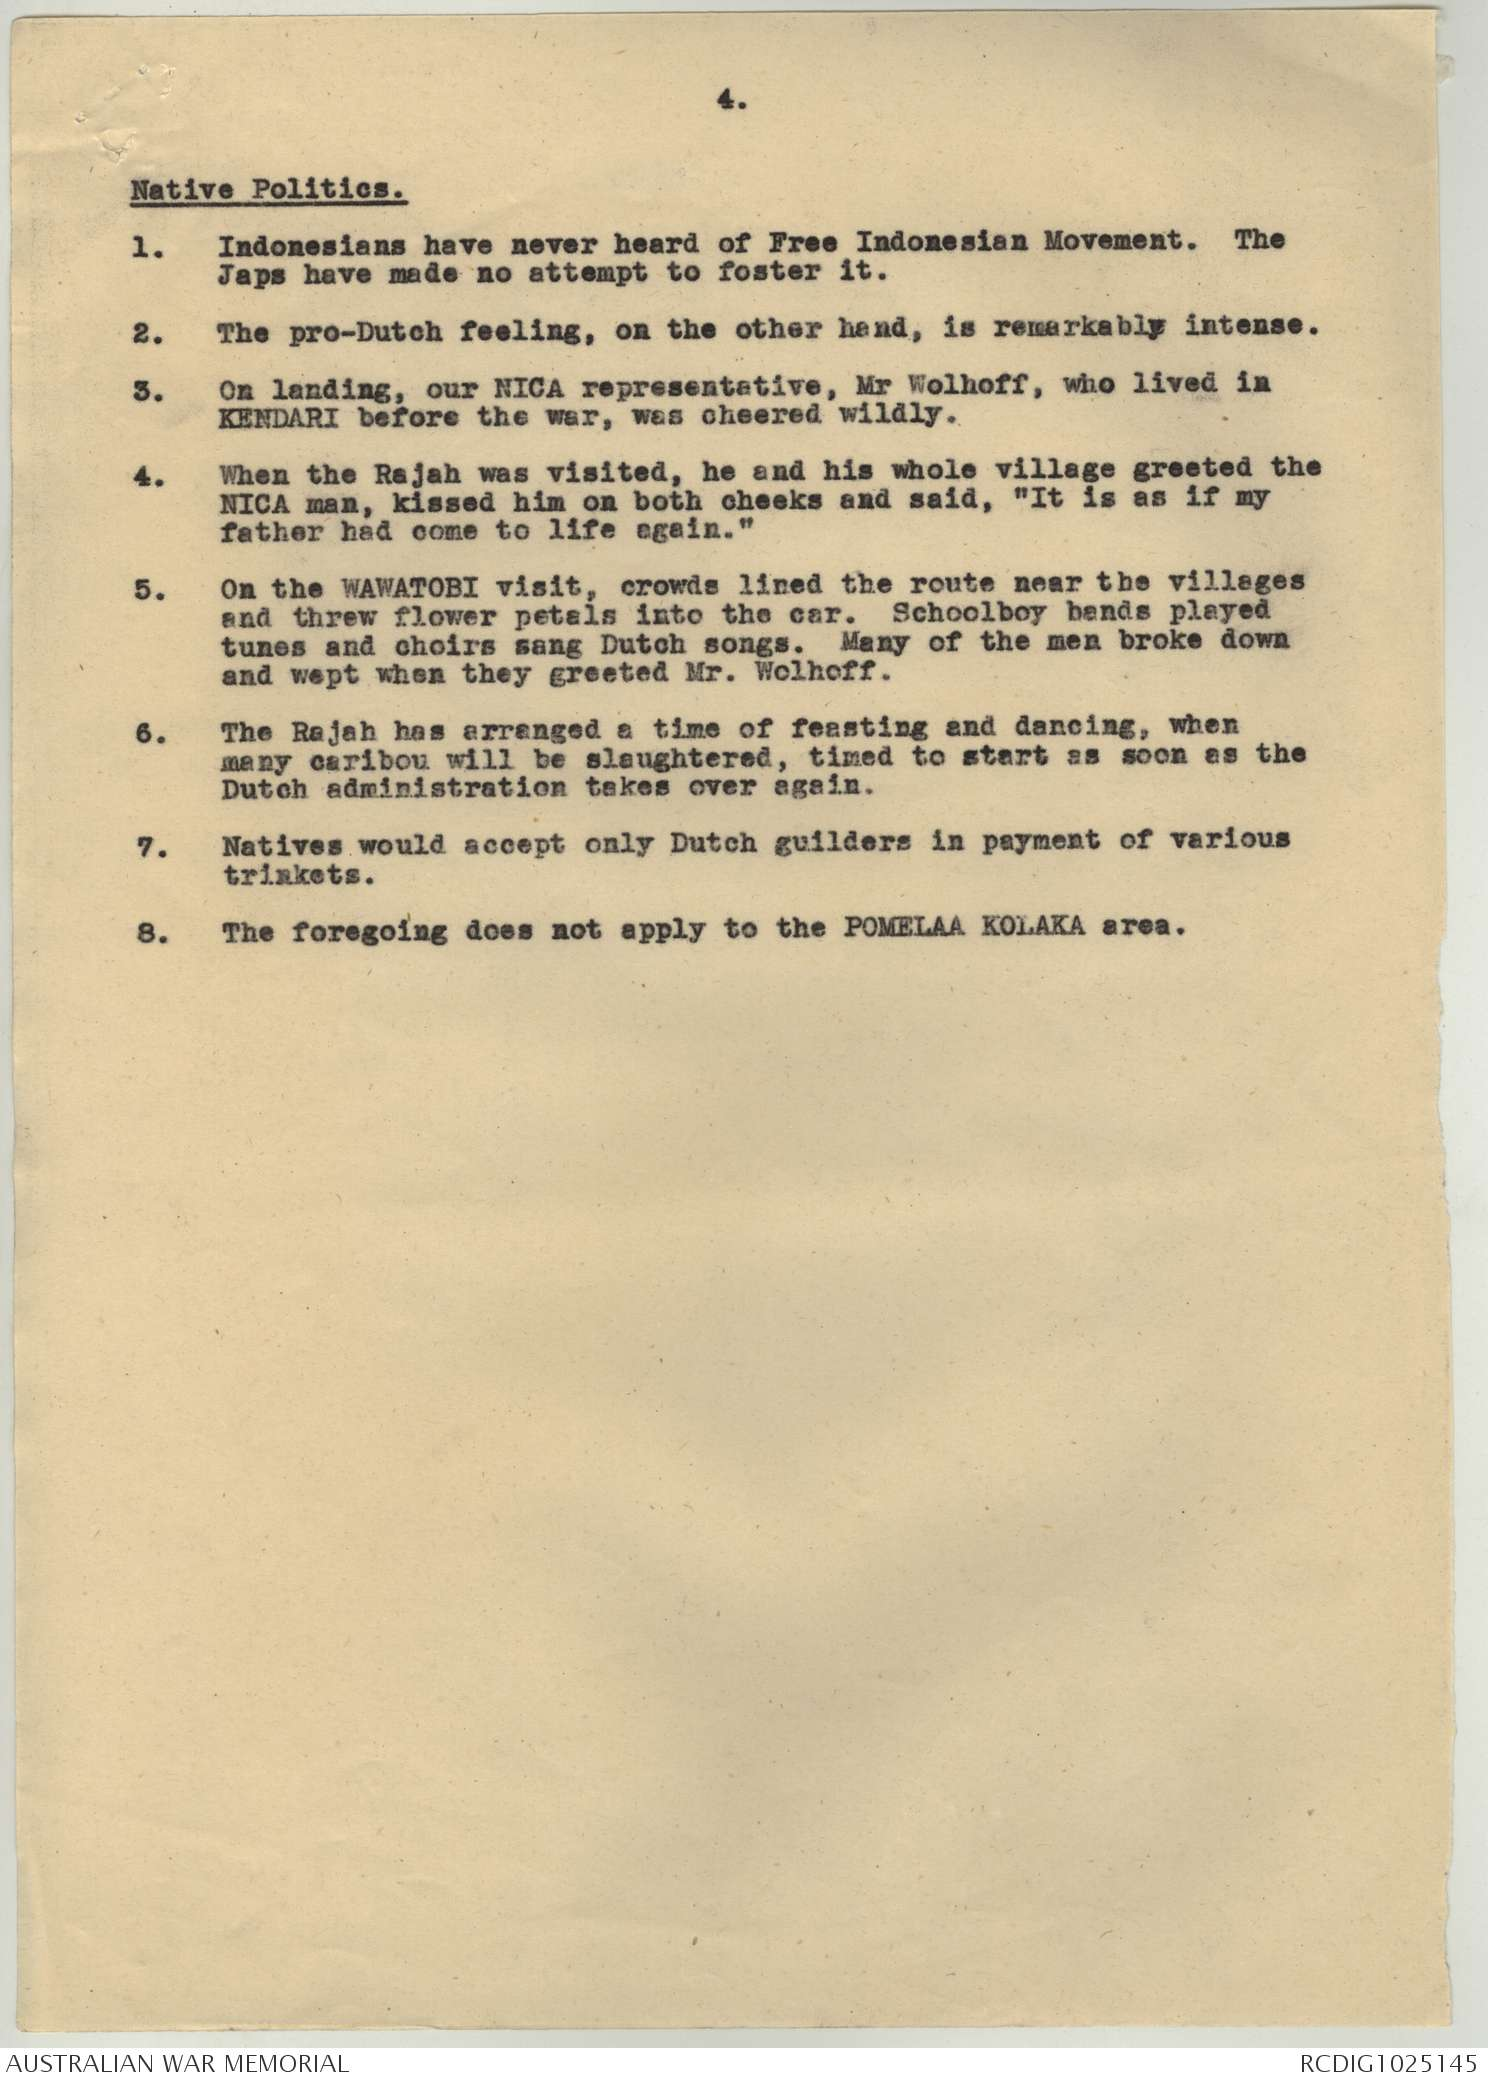 AWM52 8/3/27/103 - December 1945, part 1 of 2 | The